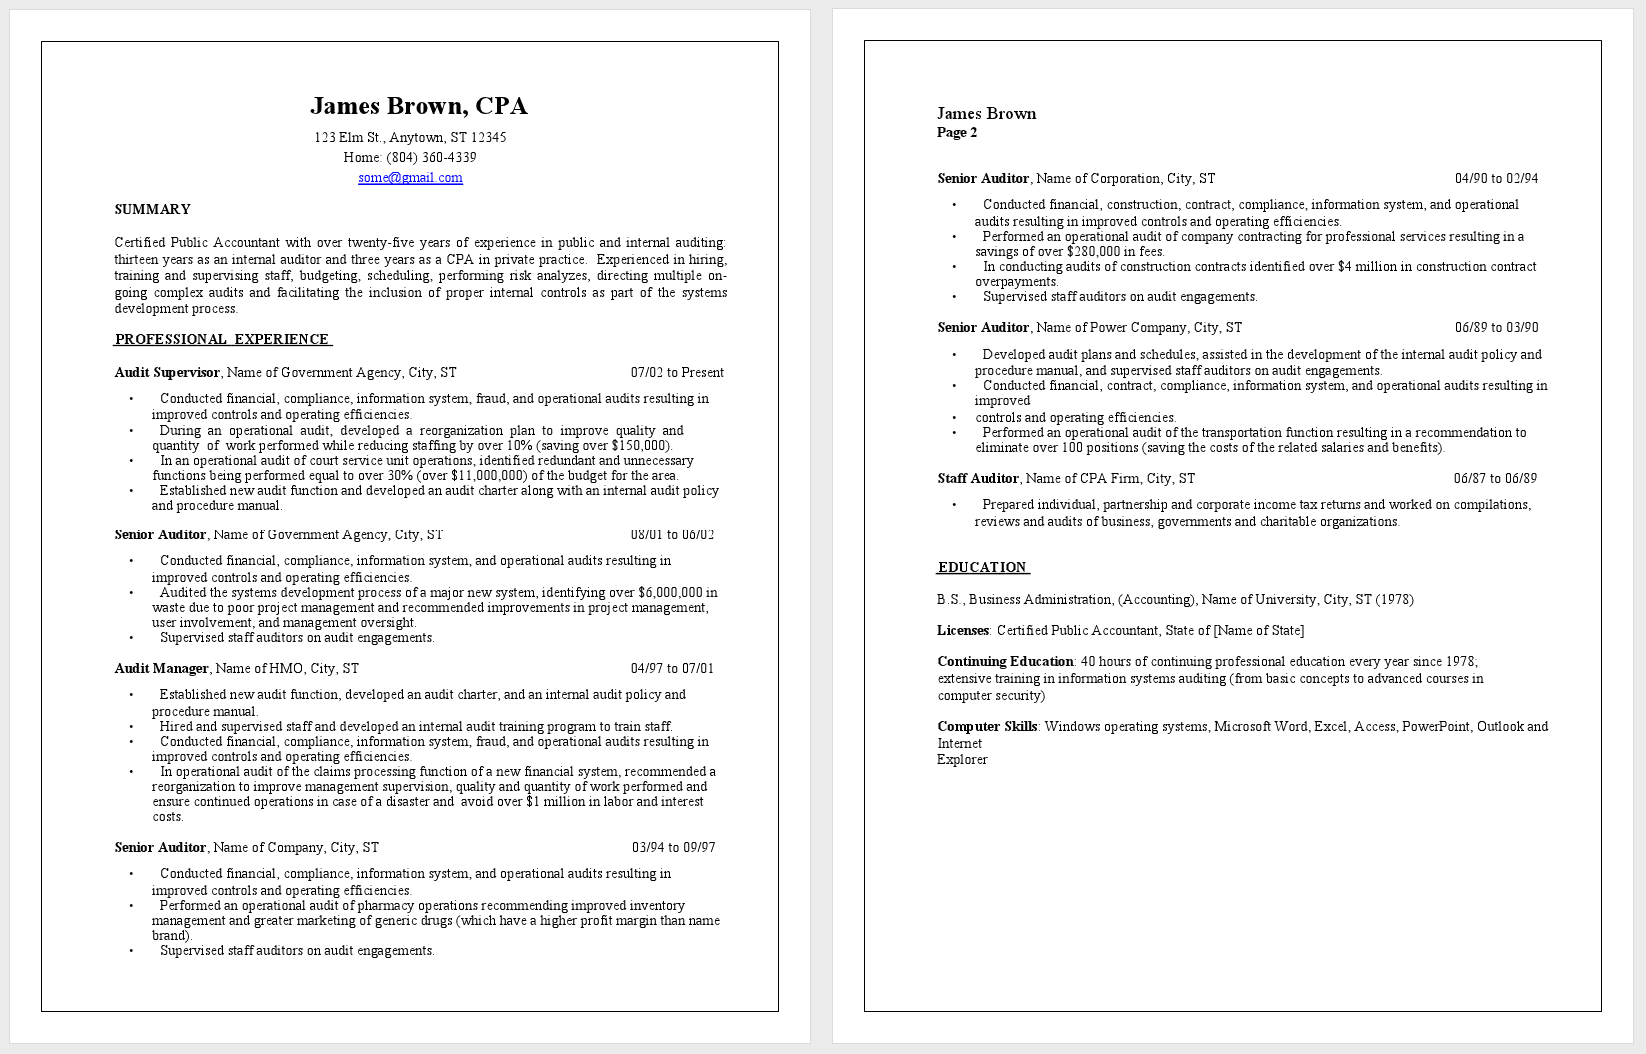 cpa passed resume resume writing resume examples cover letters cpa passed resume can my resume show i passed the cpa exam before i am cpa